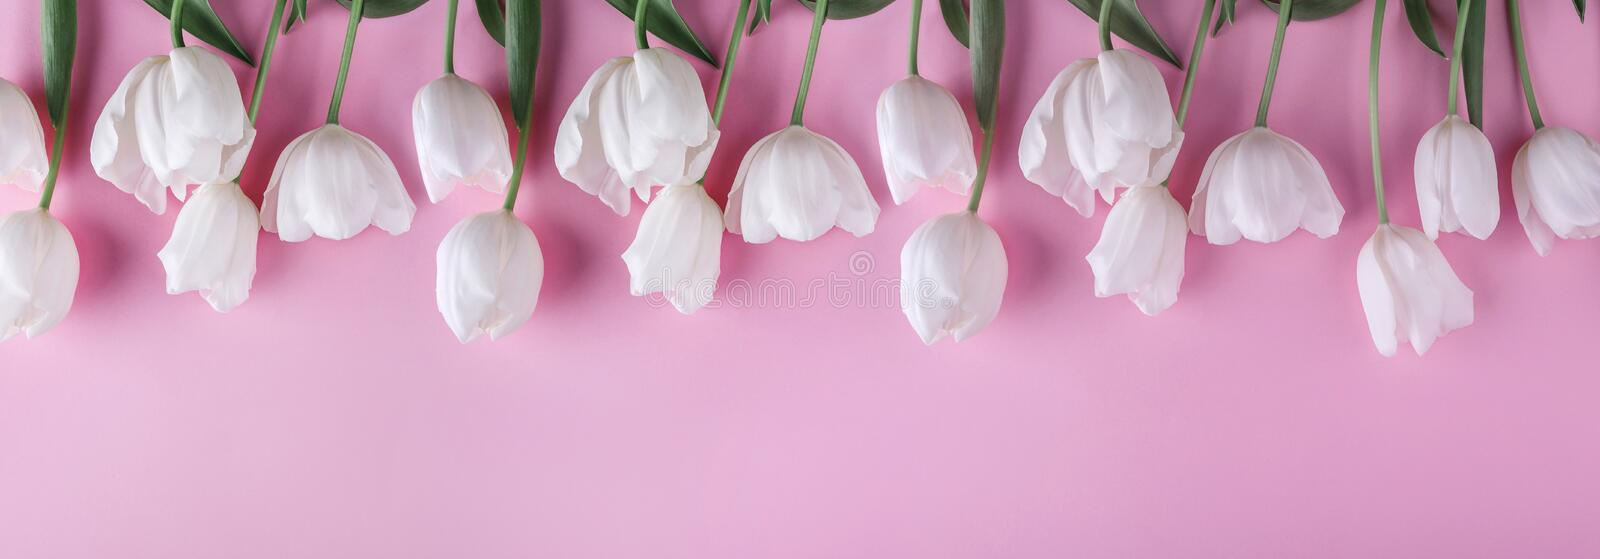 White tulips flowers over light pink background. Greeting card or wedding invitation. stock photography